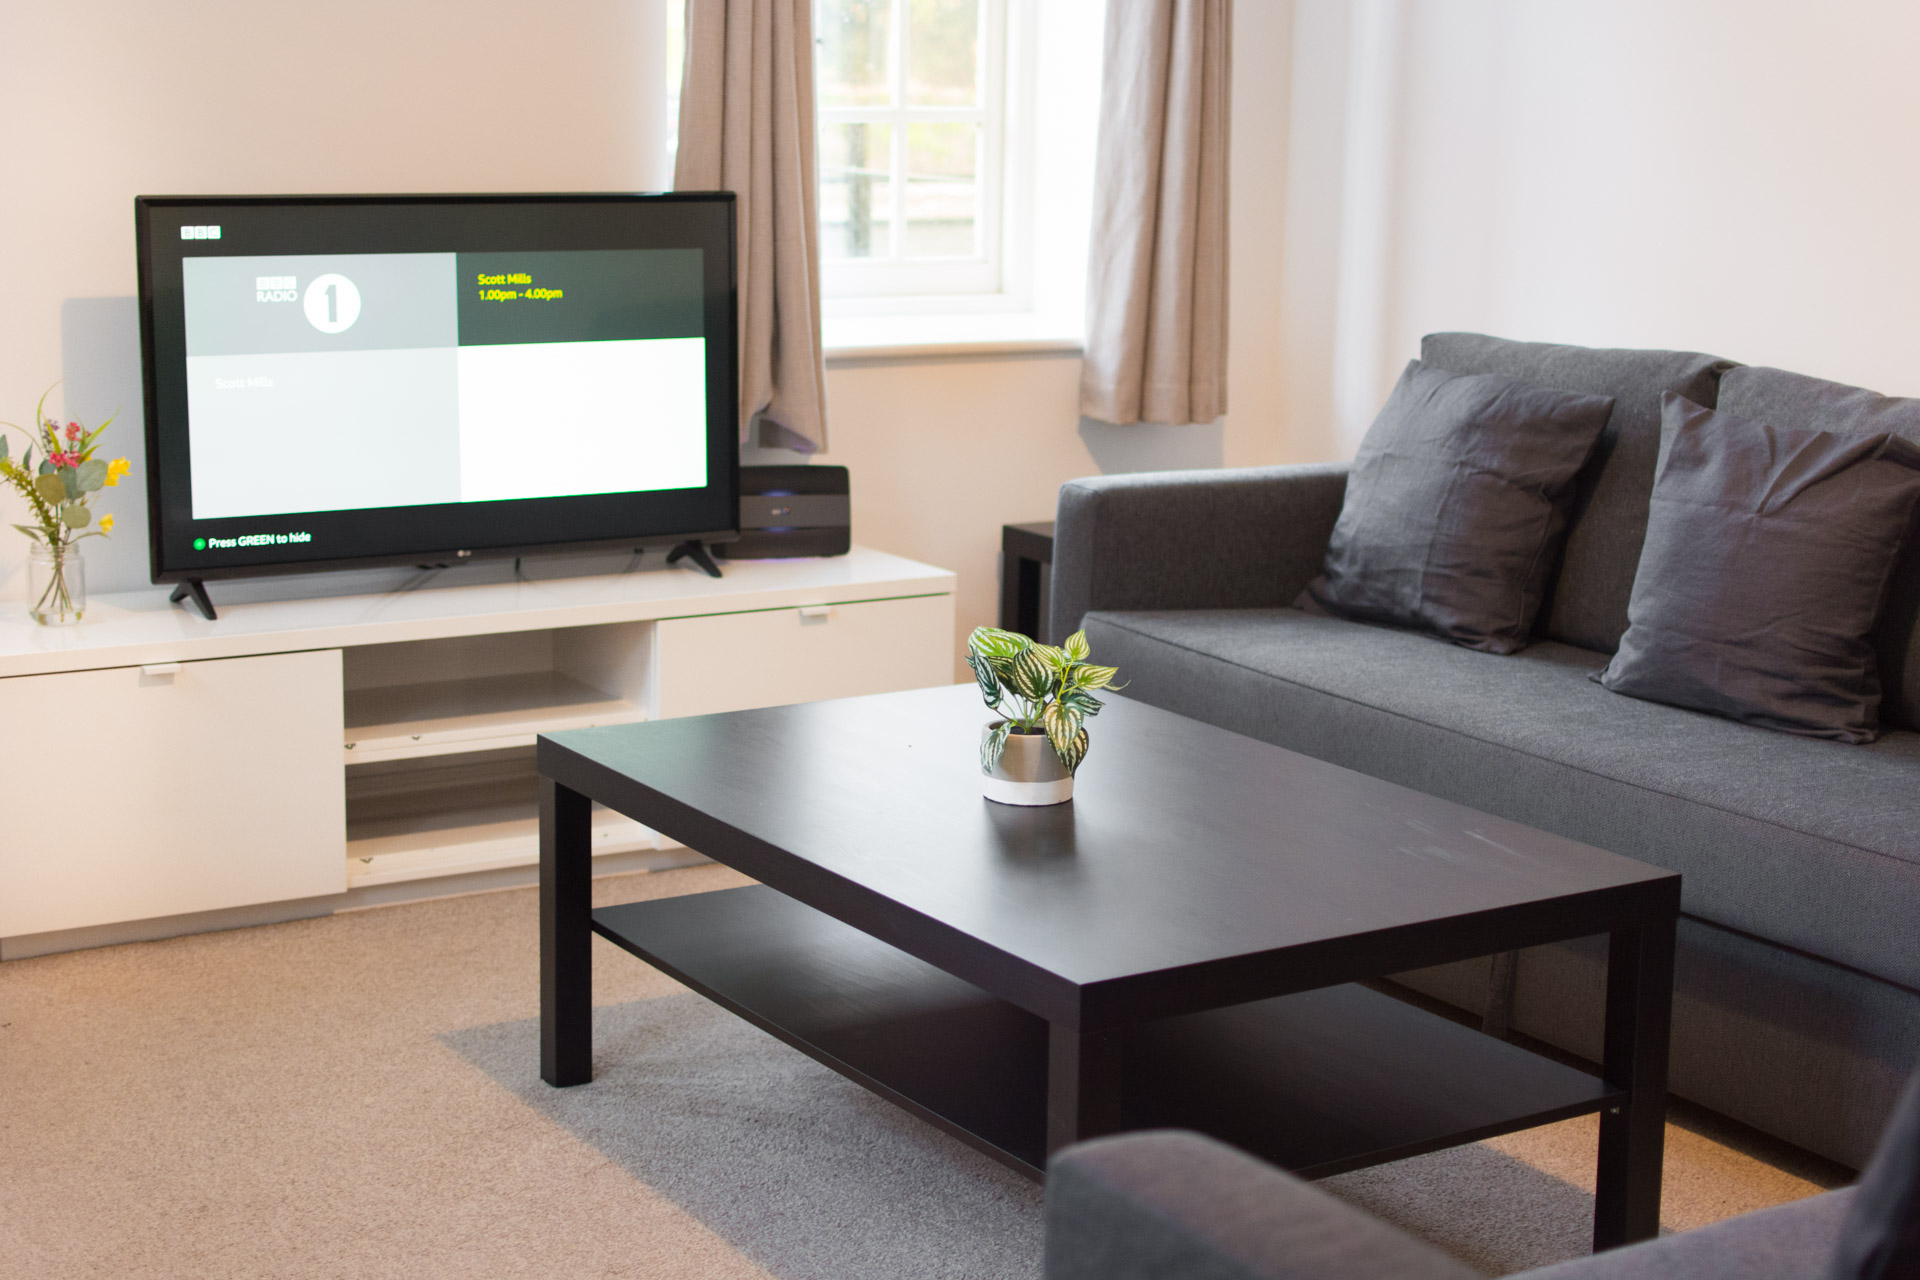 Coffee table and flat screen tv.